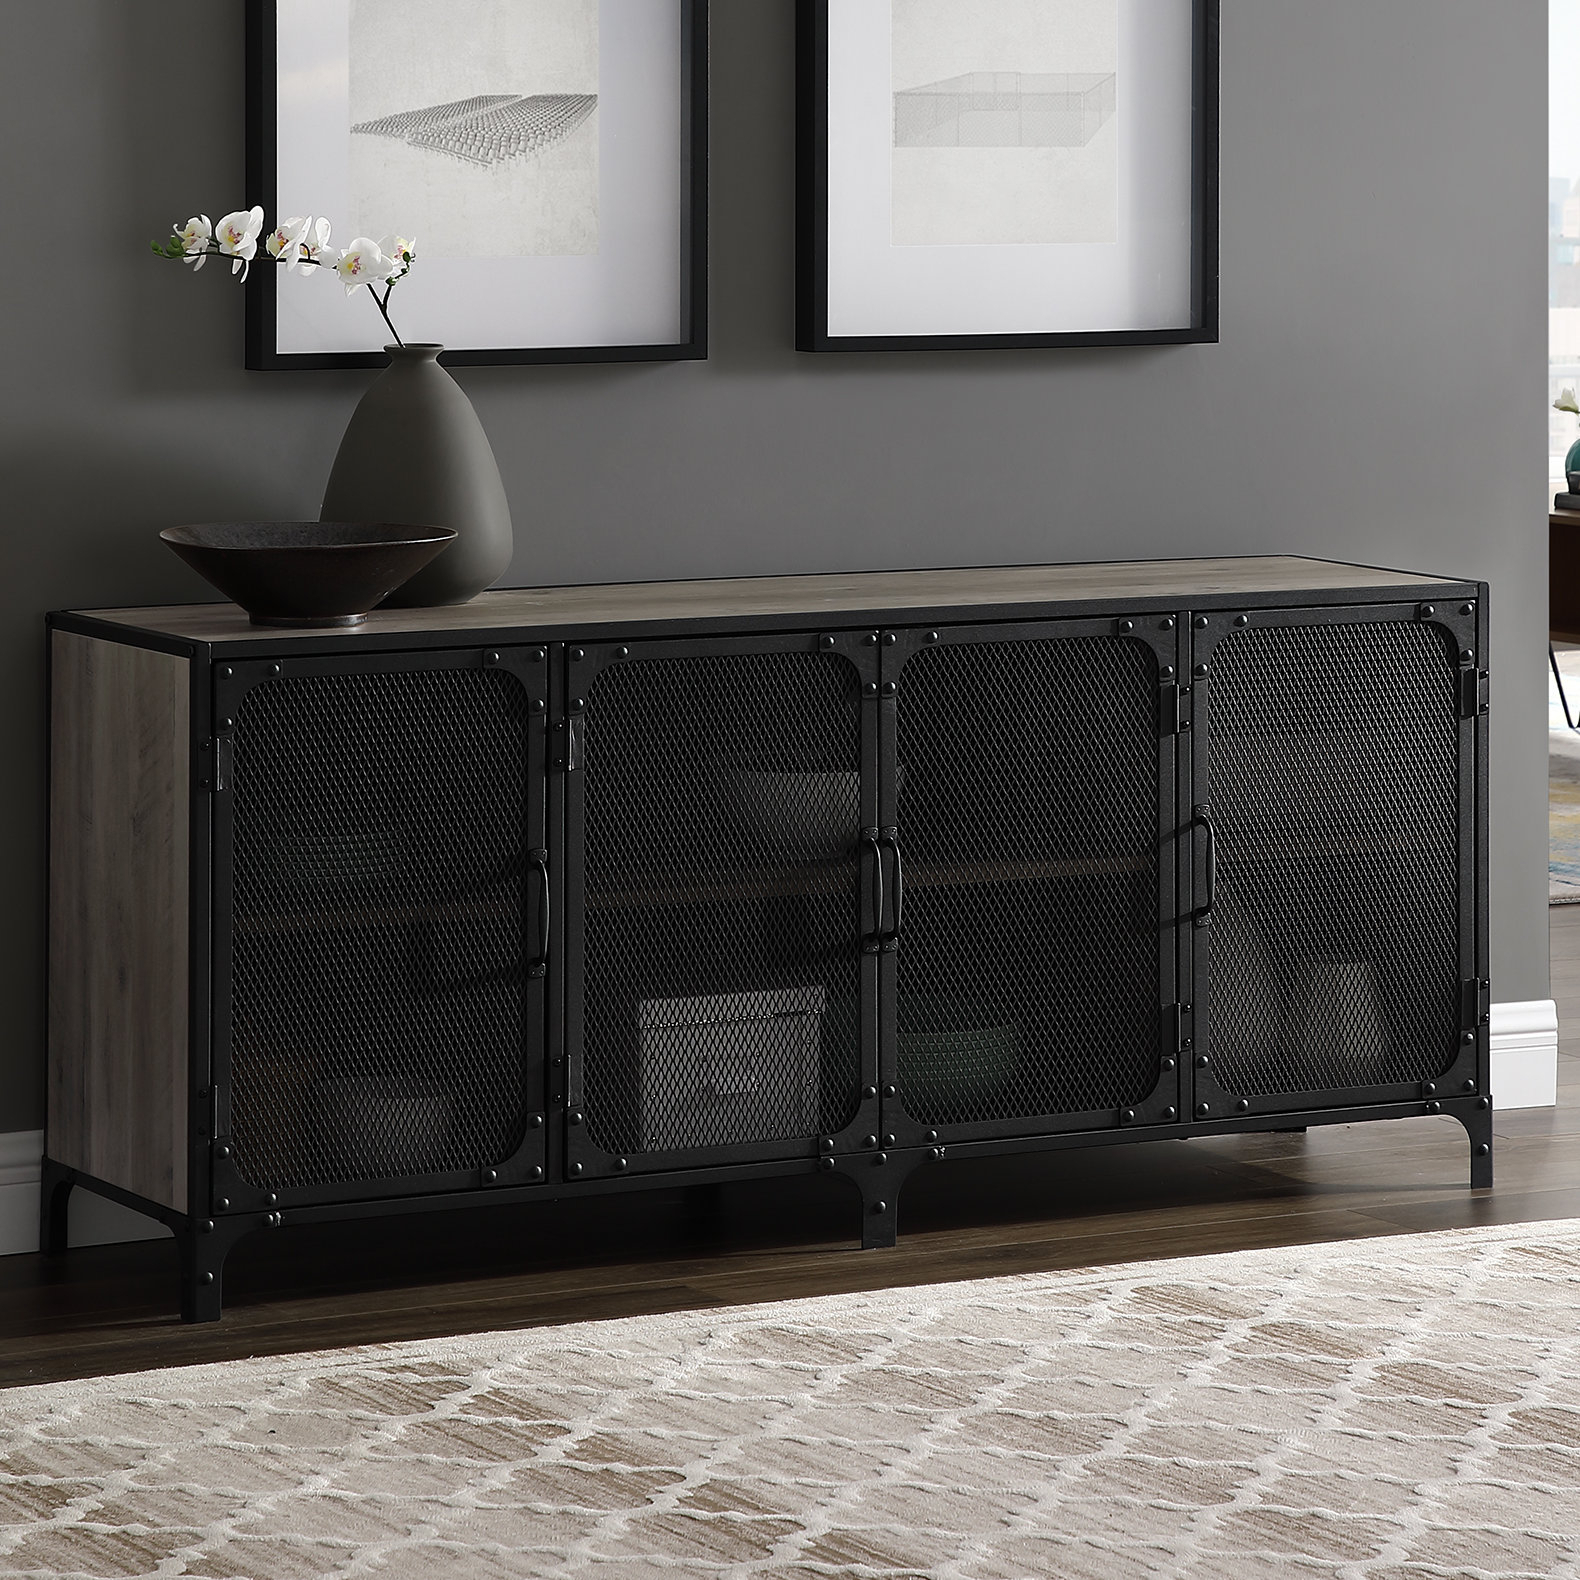 Industrial Tv Stands You'll Love | Wayfair intended for Walton Grey 72 Inch Tv Stands (Image 14 of 30)